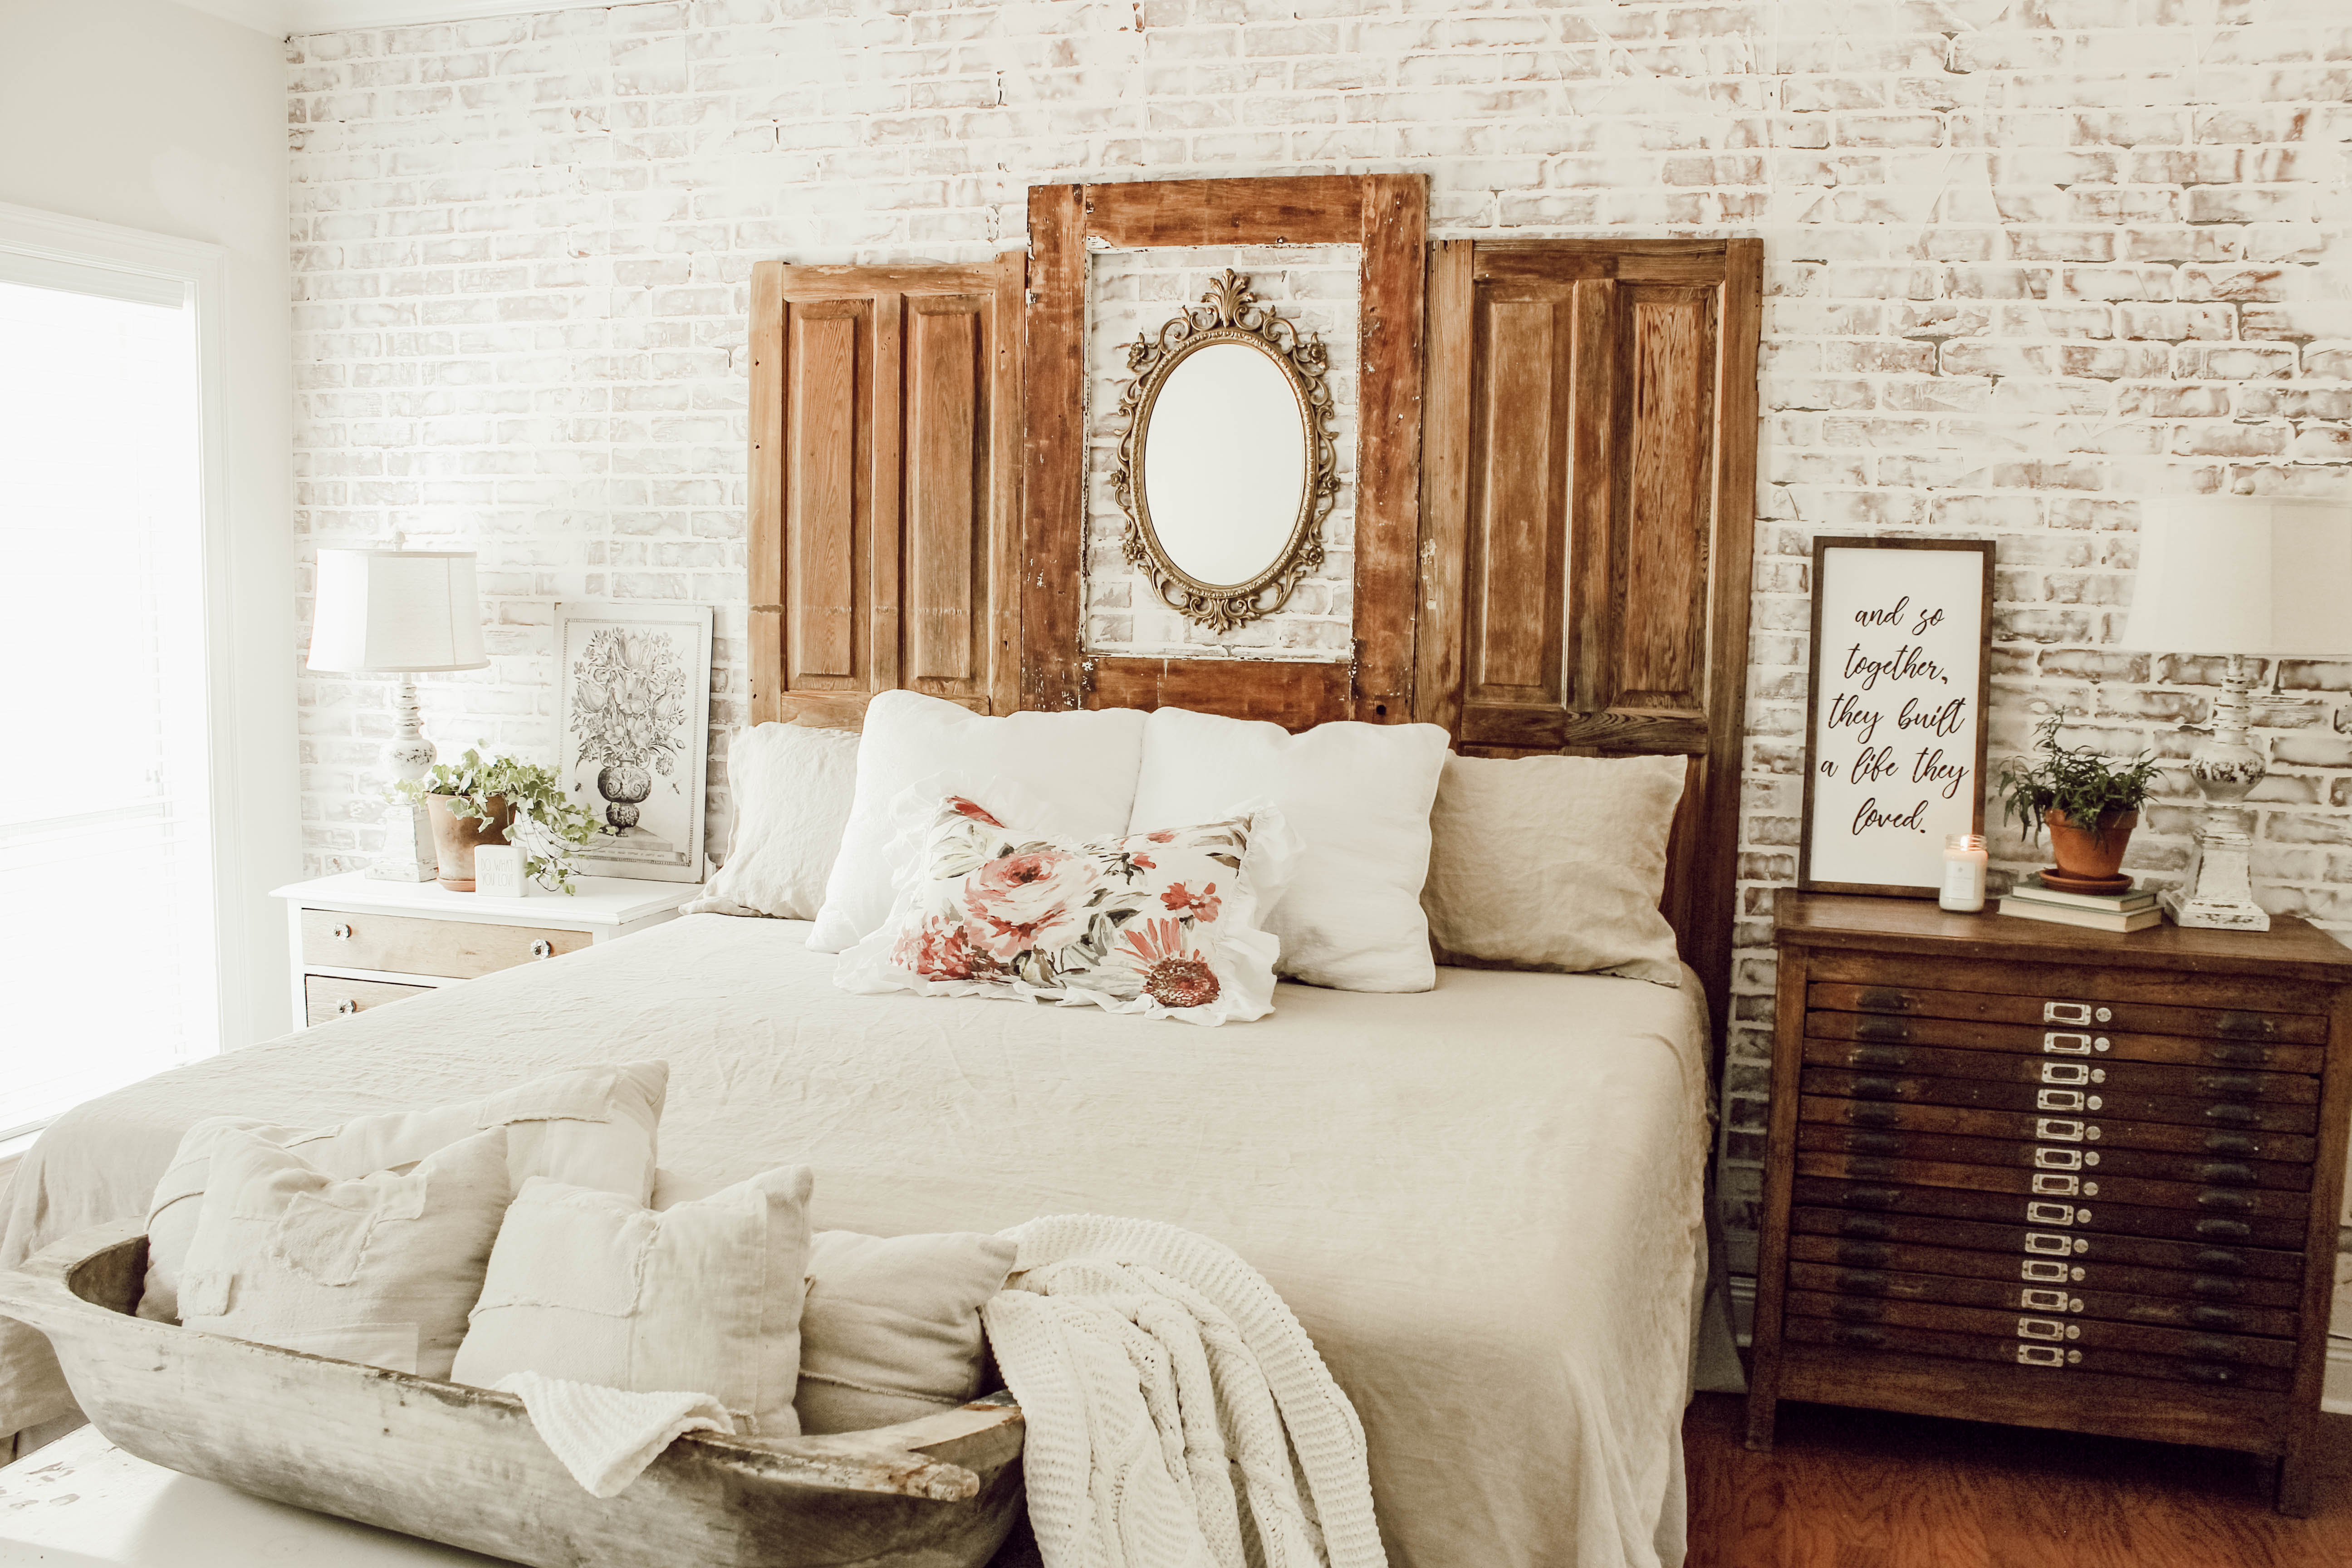 Sharing the details of a summer bedroom makeover, including a faux brick wall, vintage decor, a DIY headboard and linen duvet.